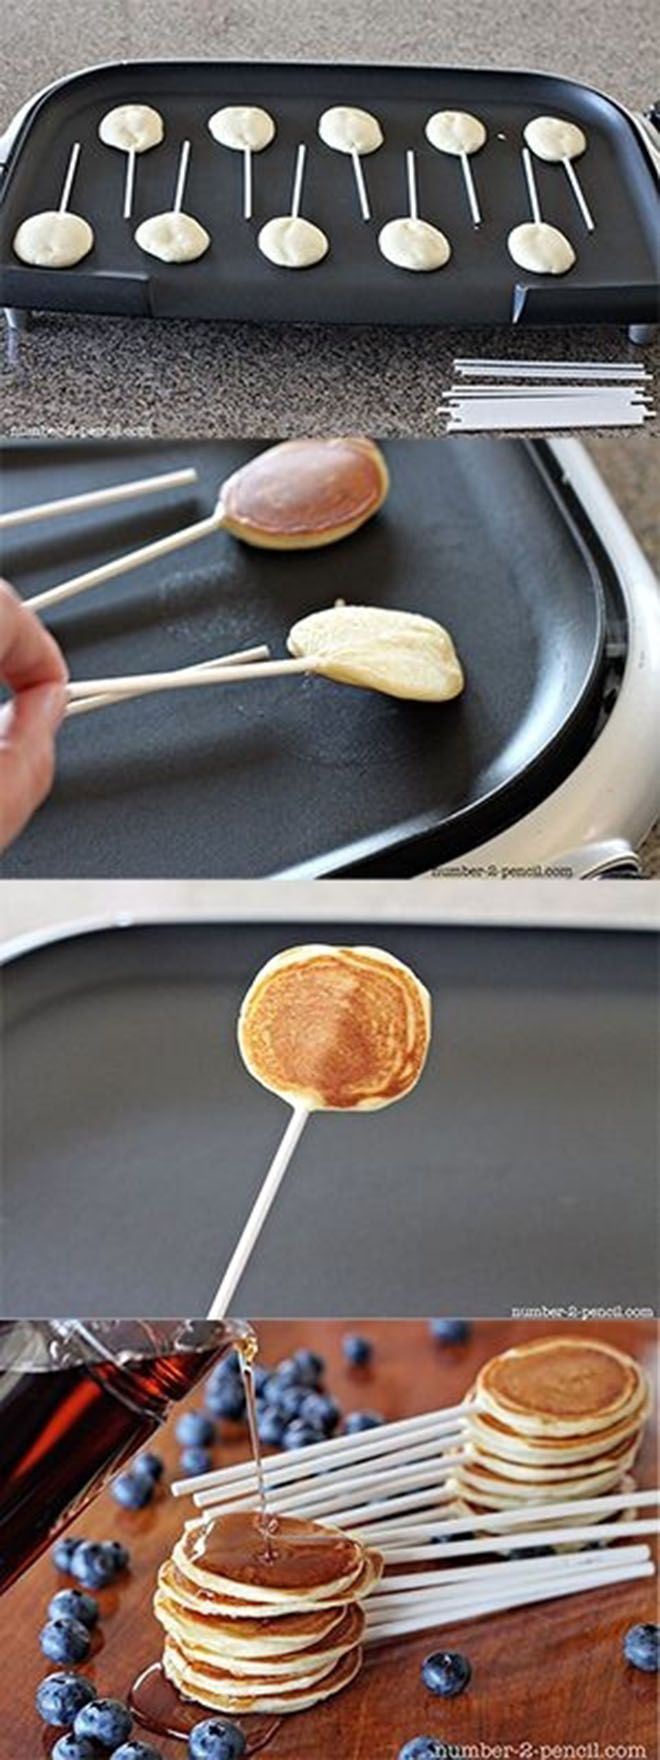 If you thought you knew how to cook, or eat, you're wrong. Here are 38 innovative food hacks that will revolutionize your cooking and make everyday food easy to make and total fun. Innovation was never this delicious! If you thought you knew how to cook, or eat, you're wrong. Here are 38 innovative food …